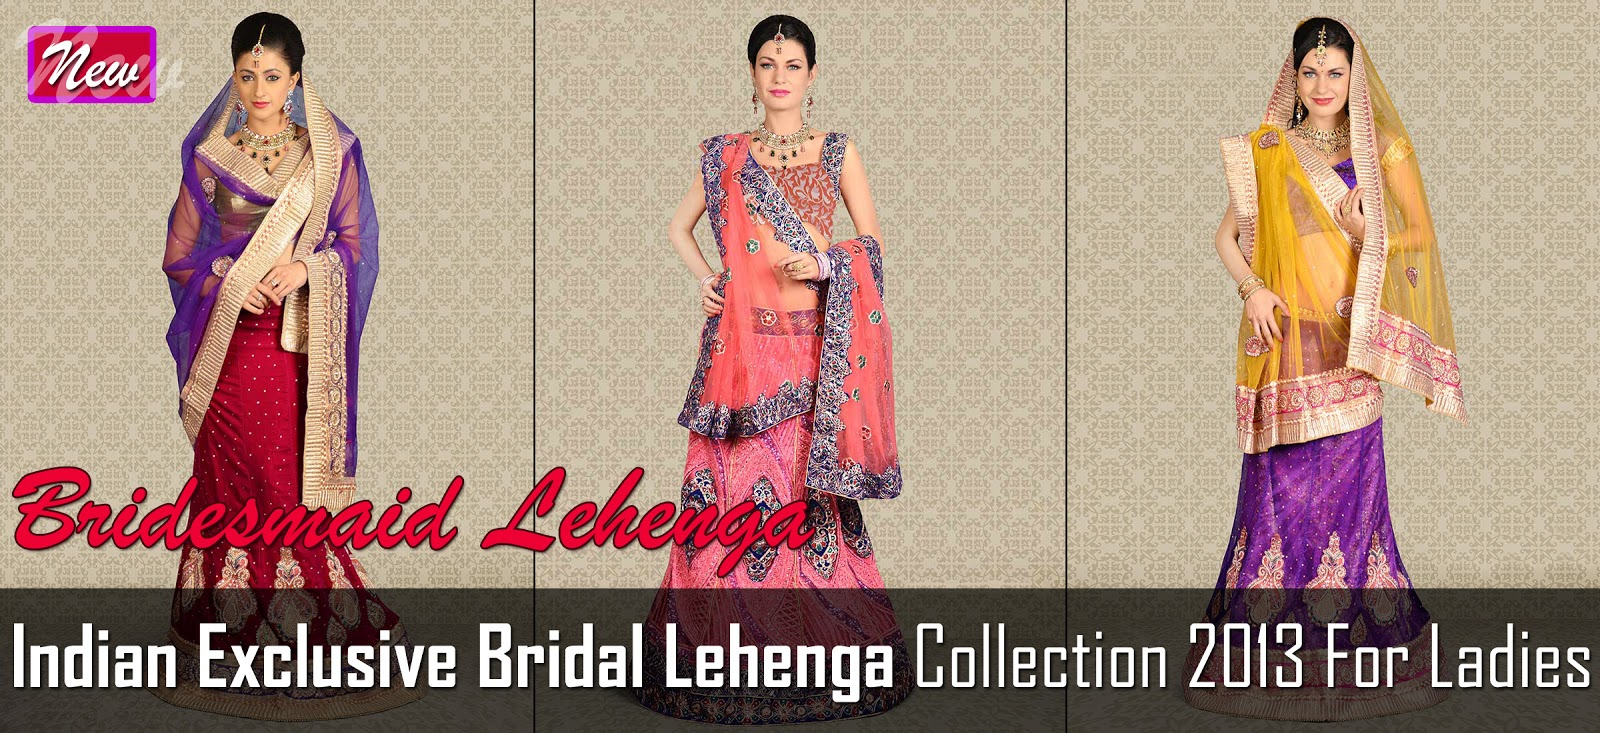 Indian Bridal Lehenga Collection 2013 Bridesmaid Lehenga Designs New Lehenga Choli Collection Fashion World Hunt,Small Space Design Ideas For Small Kitchens